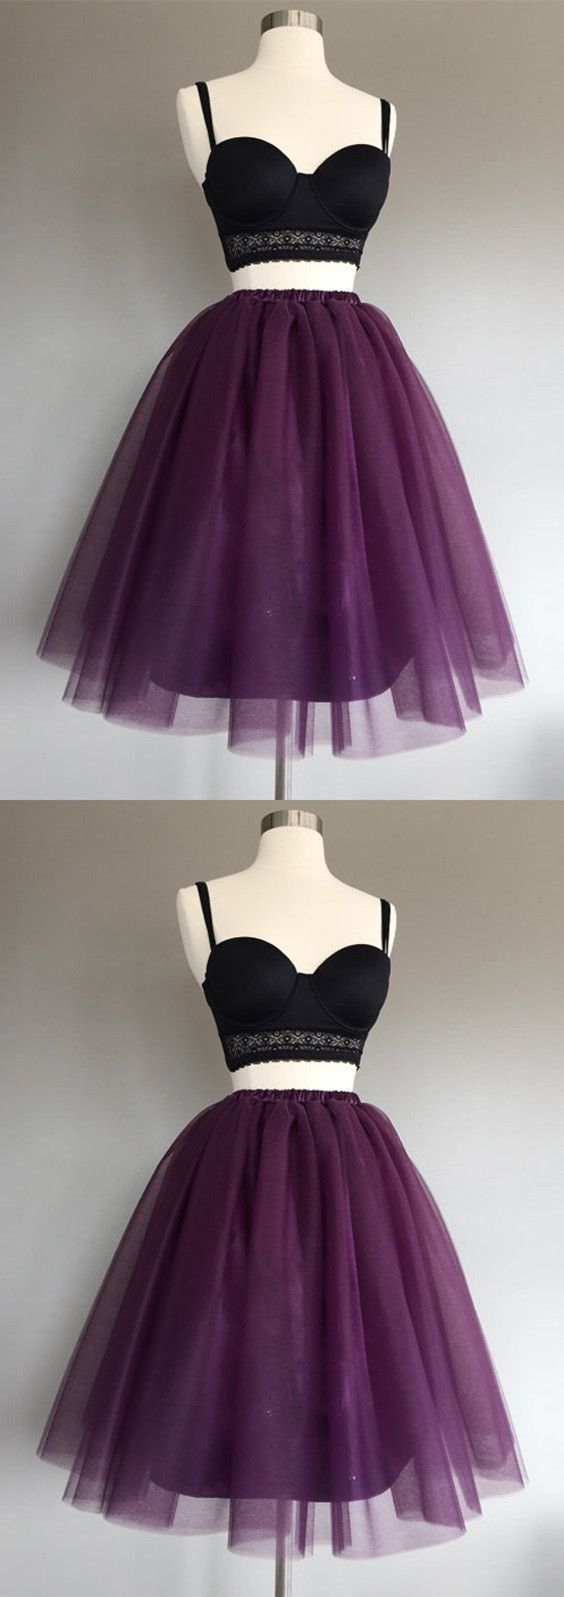 » Cute A Line Two Piece Sweetheart Spaghetti Straps Tulle Grape Short Homecoming Dresses, Short Prom Dresses HD0809006 2